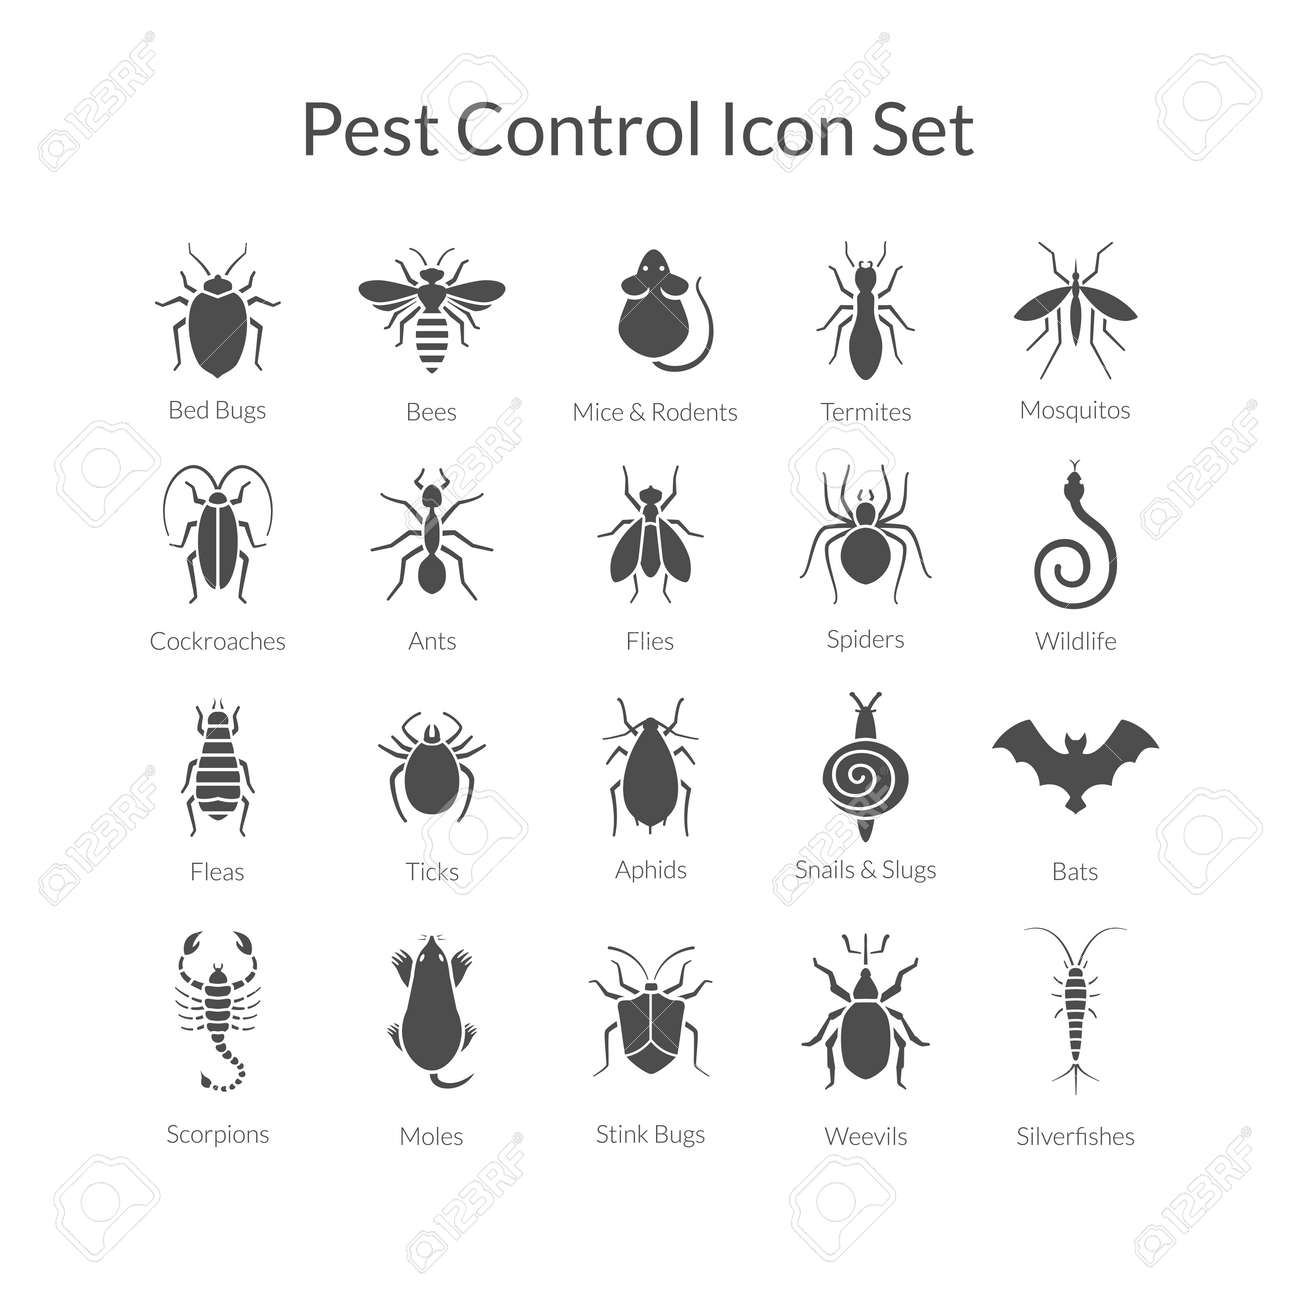 Vector black and white icons of different insects like scorpions, stink bugs, bed bugs, weevils and termites for pest control companies. Included some animals like bats, moles, mice and snakes. - 50024597